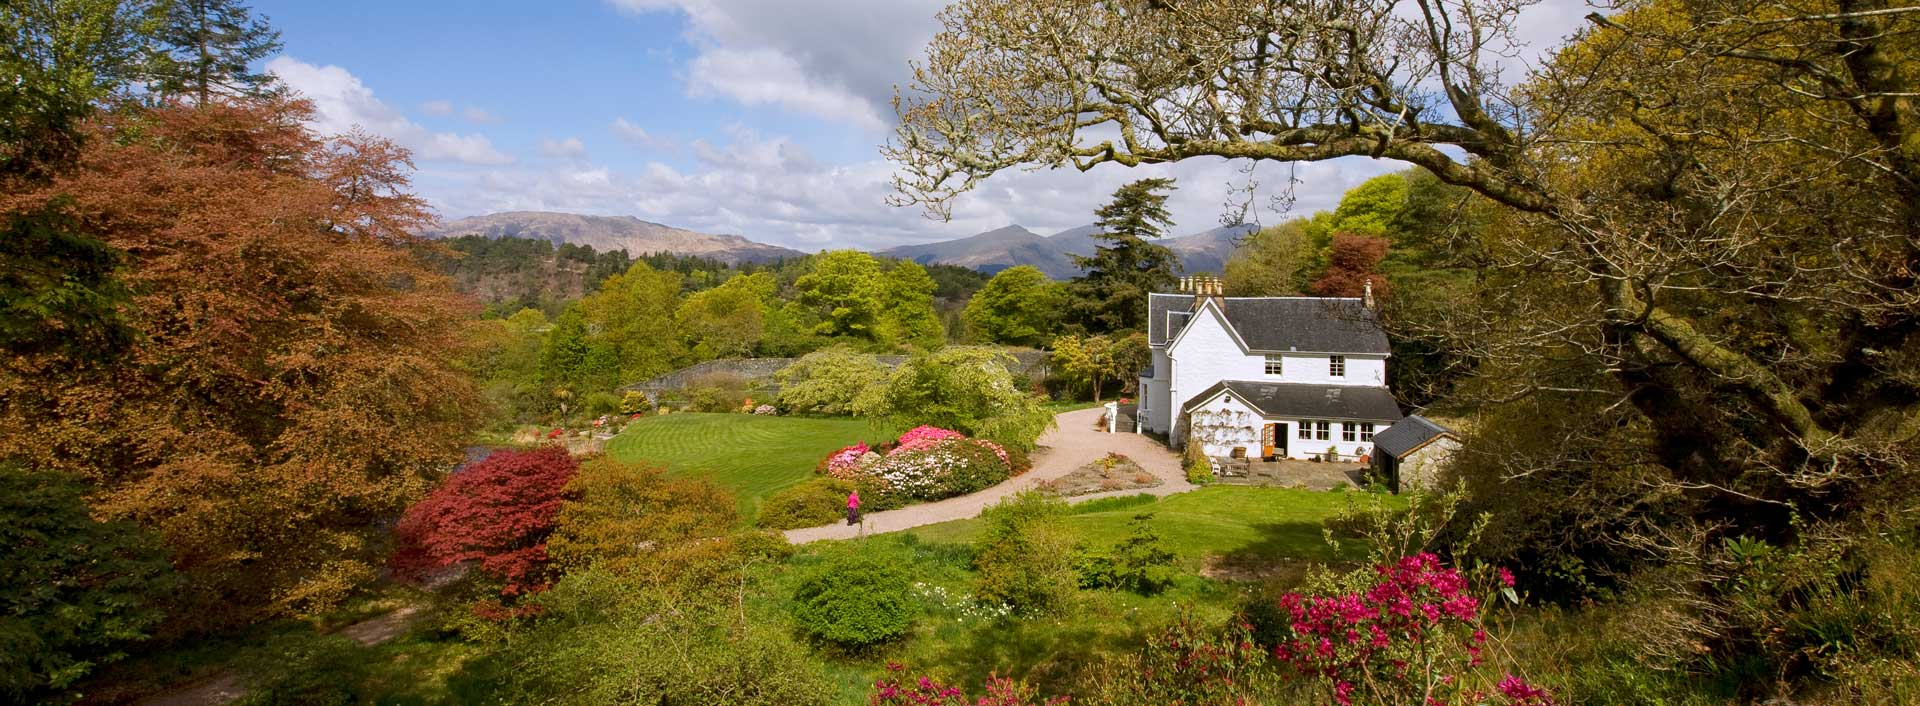 Druimneil House - country house bed and breakfast in Port Appin near Oban on the Argyll coast of Scotland